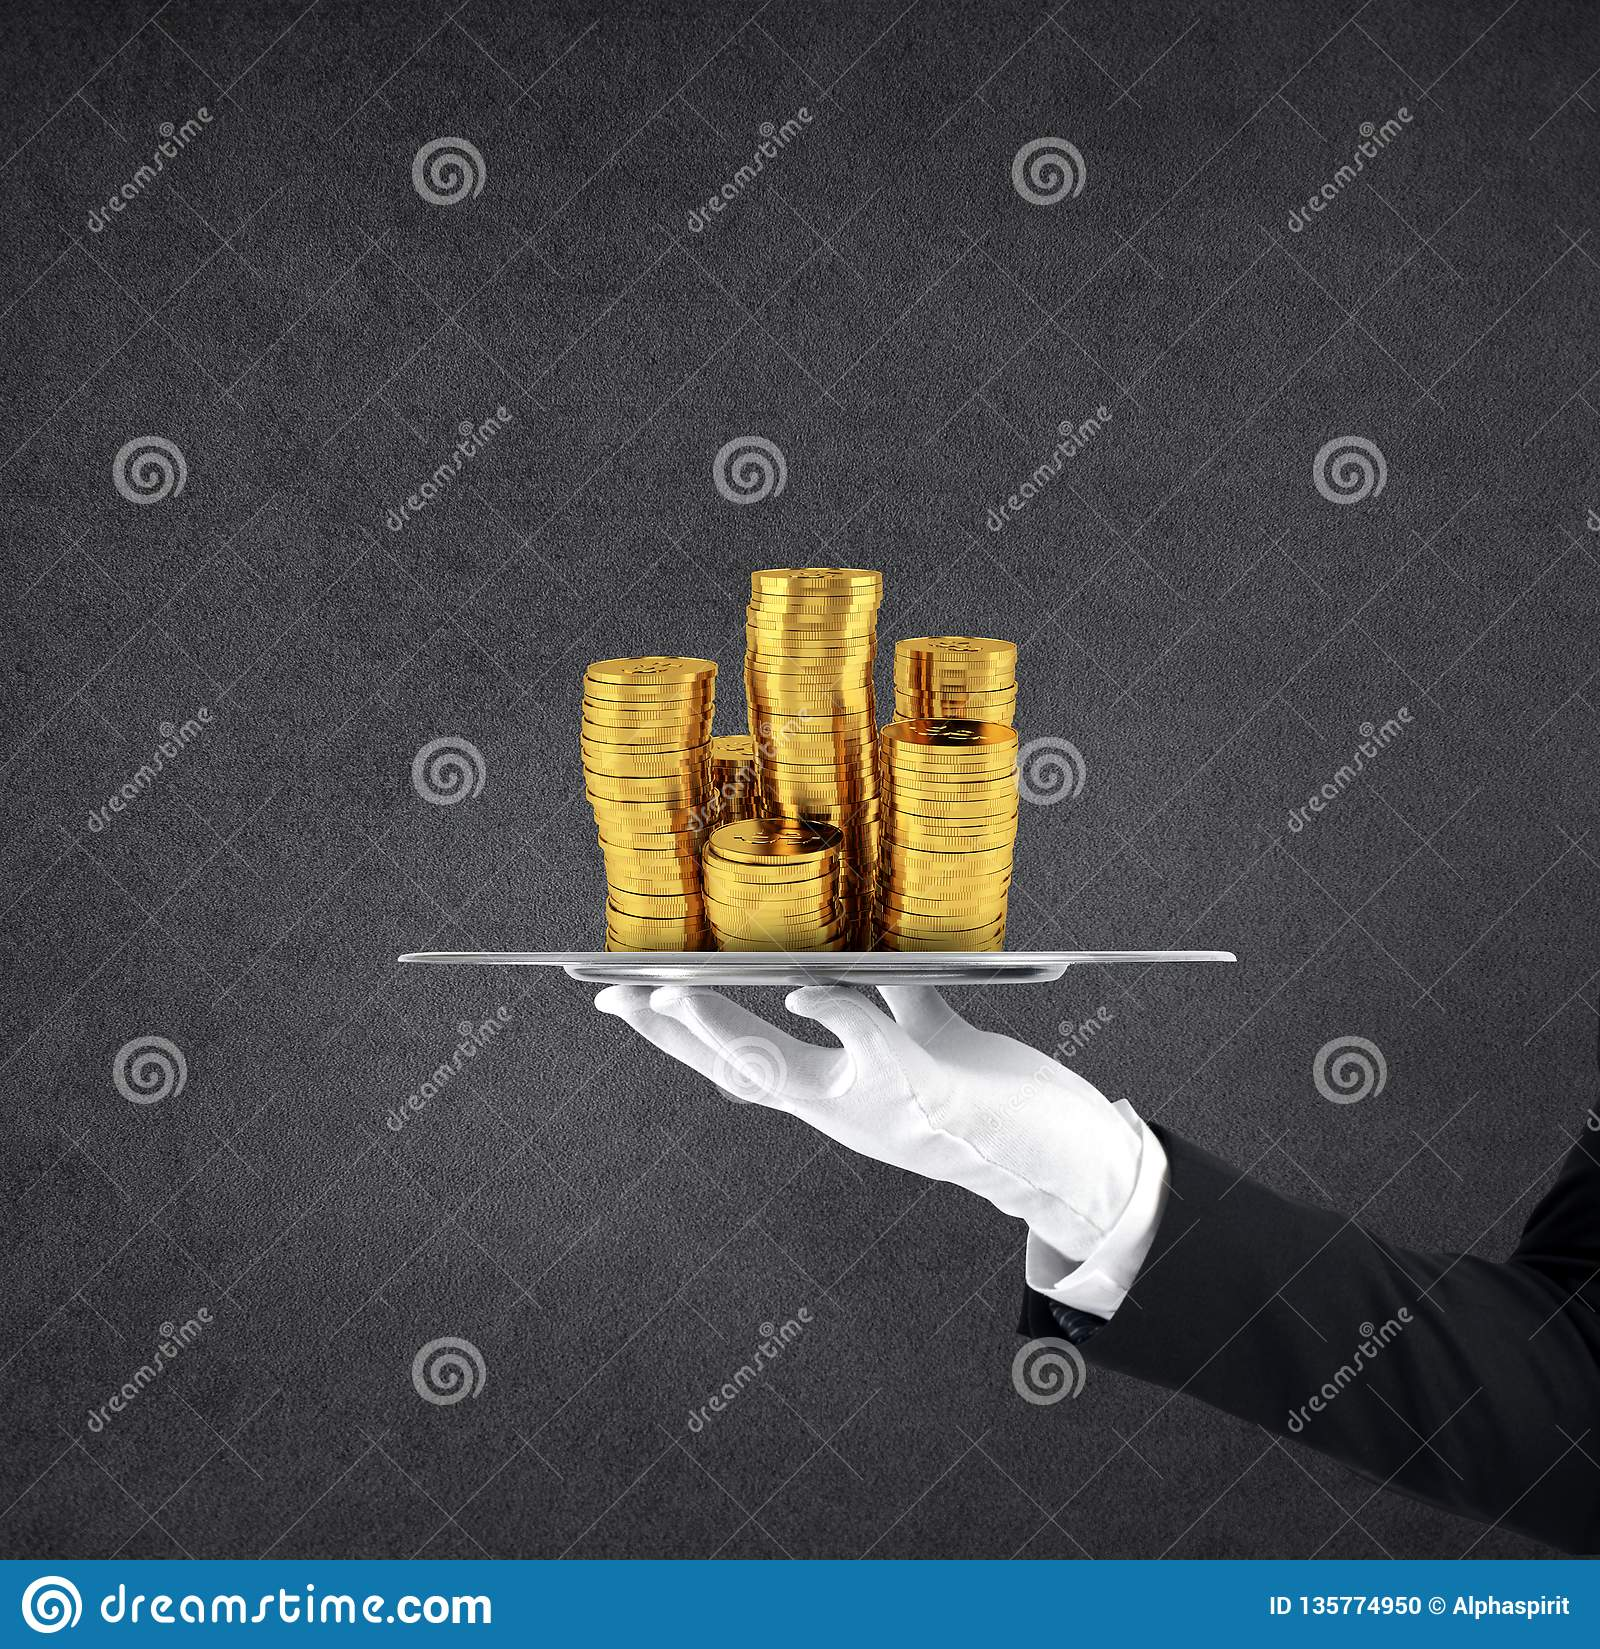 Waiter that holds a tray with golden coins. Concept of first class service on soccer